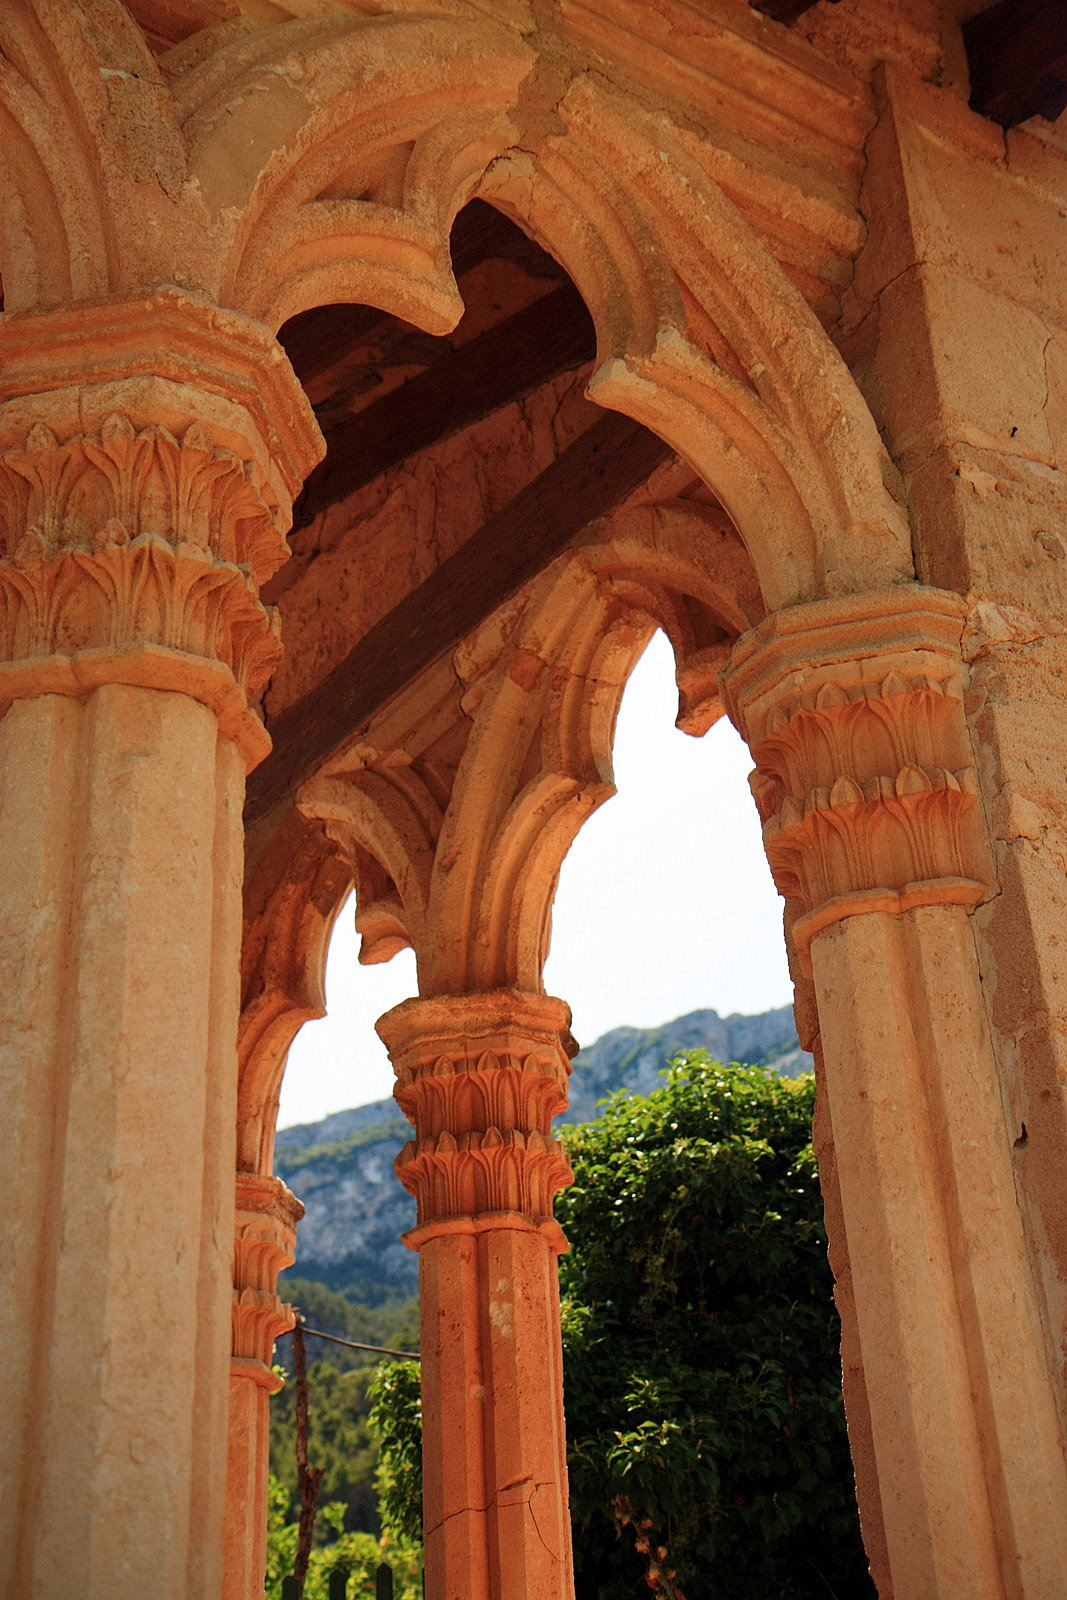 The rusty sandstone pillars of the Miramar Monastery easily make it one of the most beautiful houses and gardens in Majorca